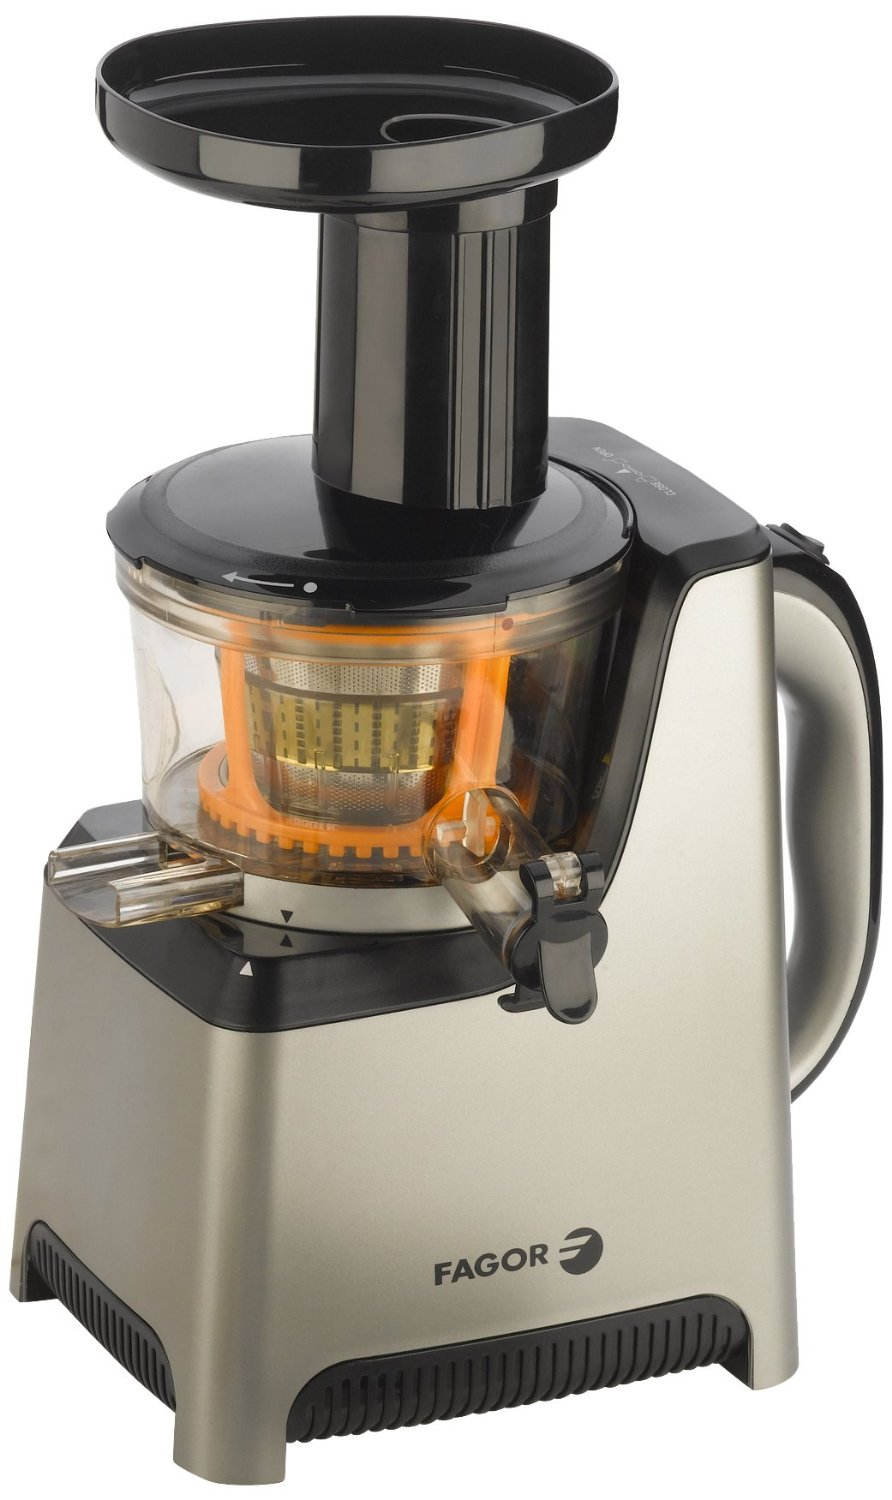 Fagor Platino Slow Juicer Review : NDB-Fagor 670041910 Platino Plus Slow Juicer and Sorbet Maker